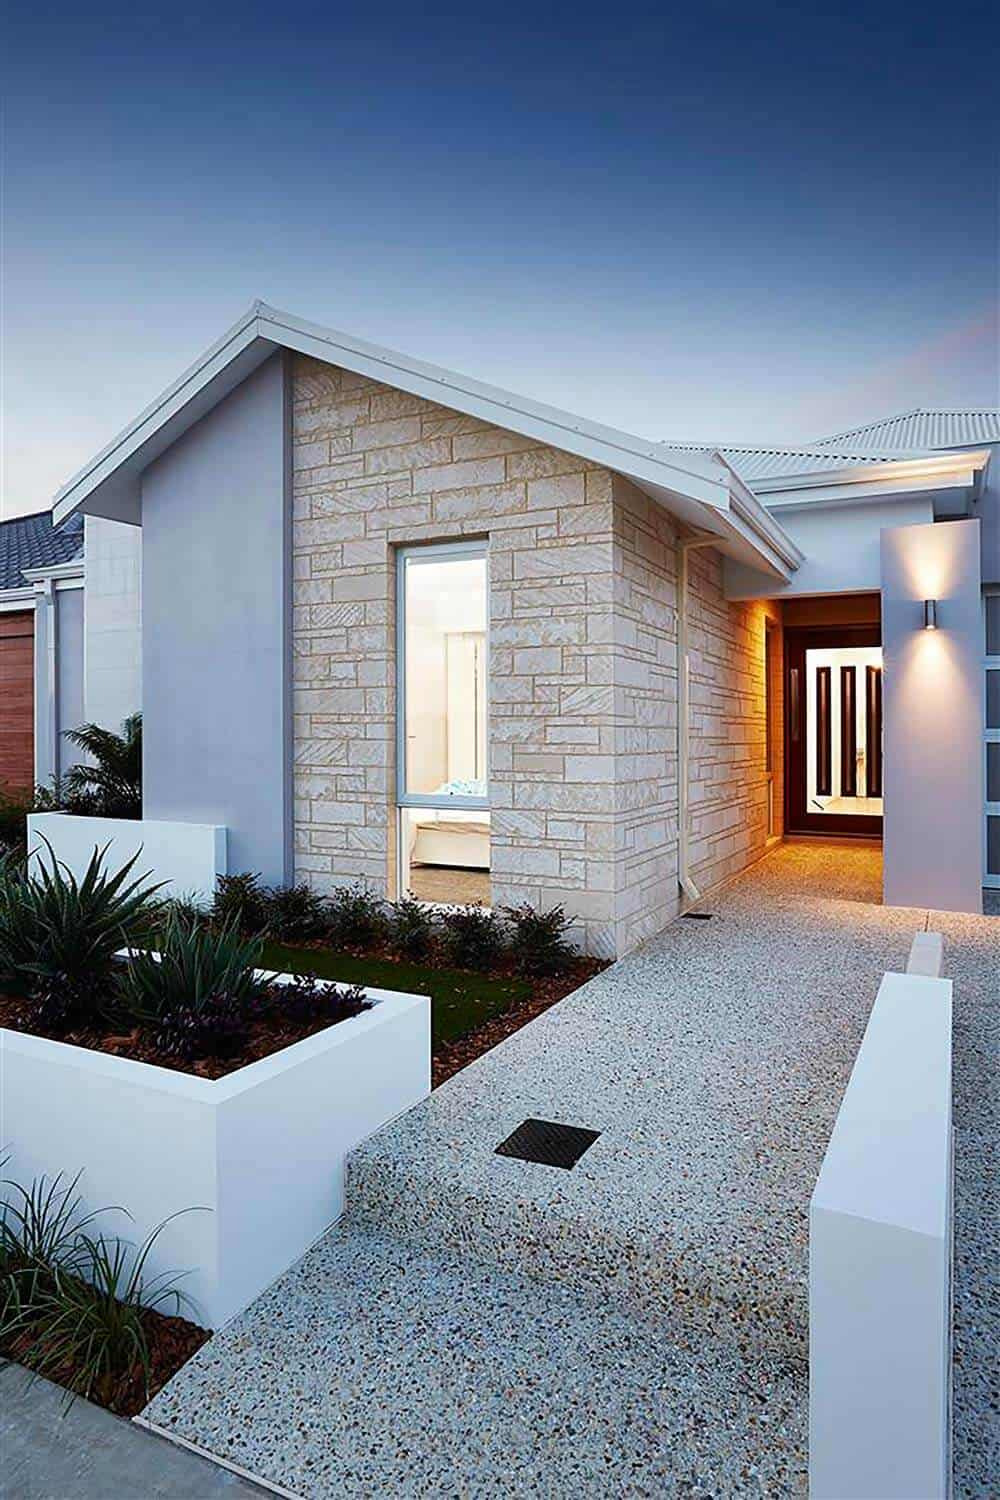 Build A House for 150k Inspirational the Sentosa Perth Ex Display Home